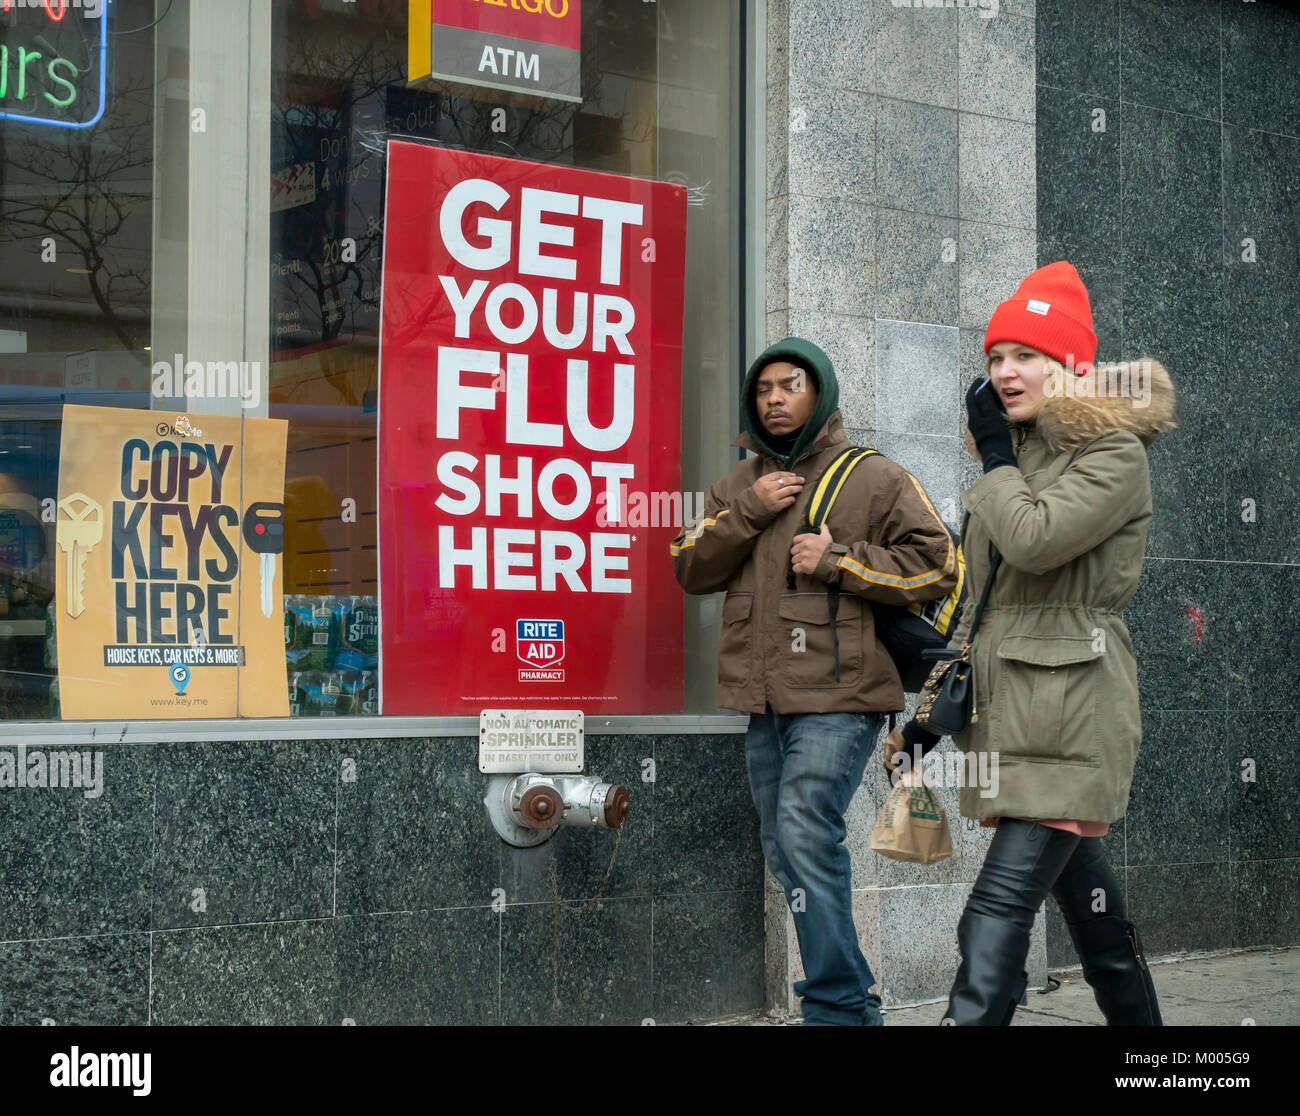 A sign advertises that flu shots are available at a Rite Aid drugstore in New York on Tuesday, January 16, 2018. - Stock Image